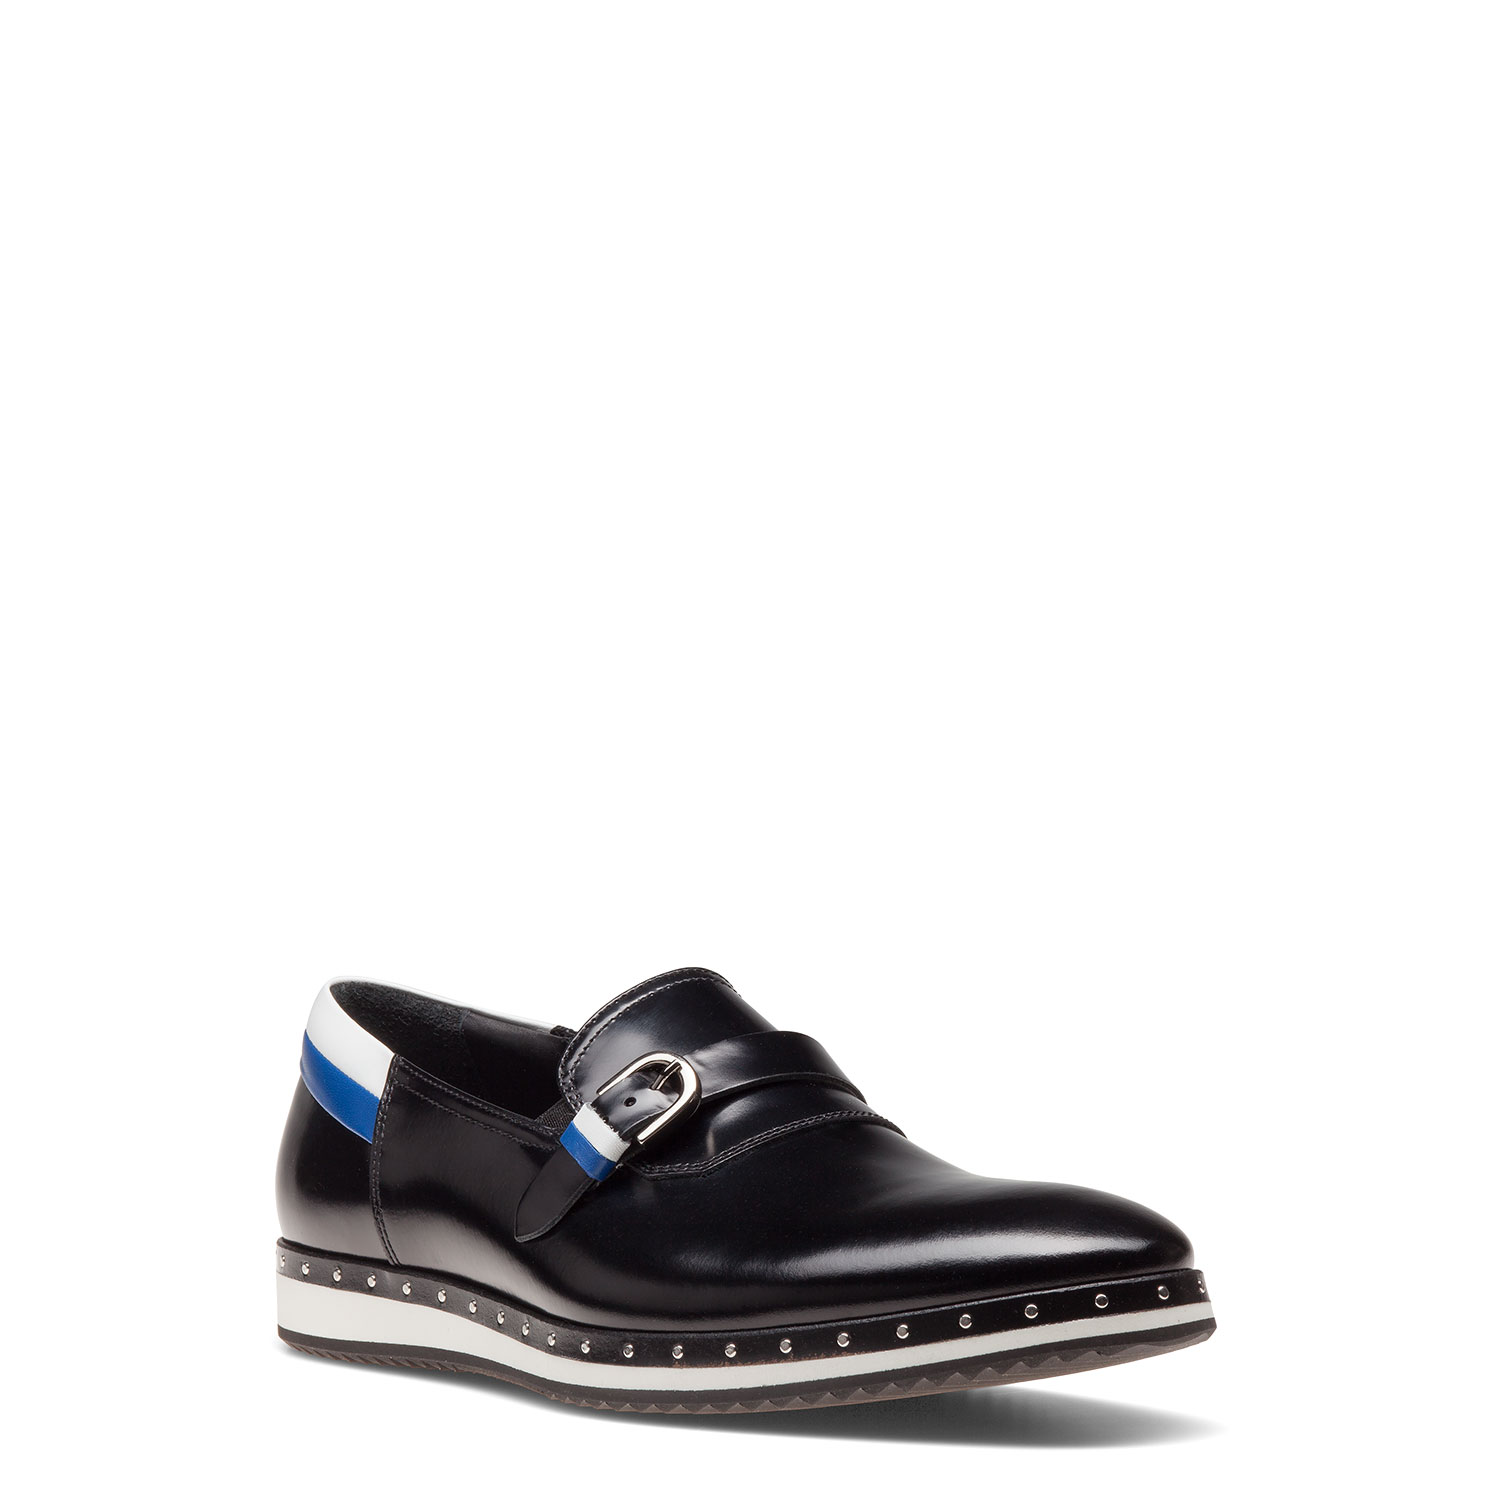 Men's shoes PAZOLINI GD-BLE1-1